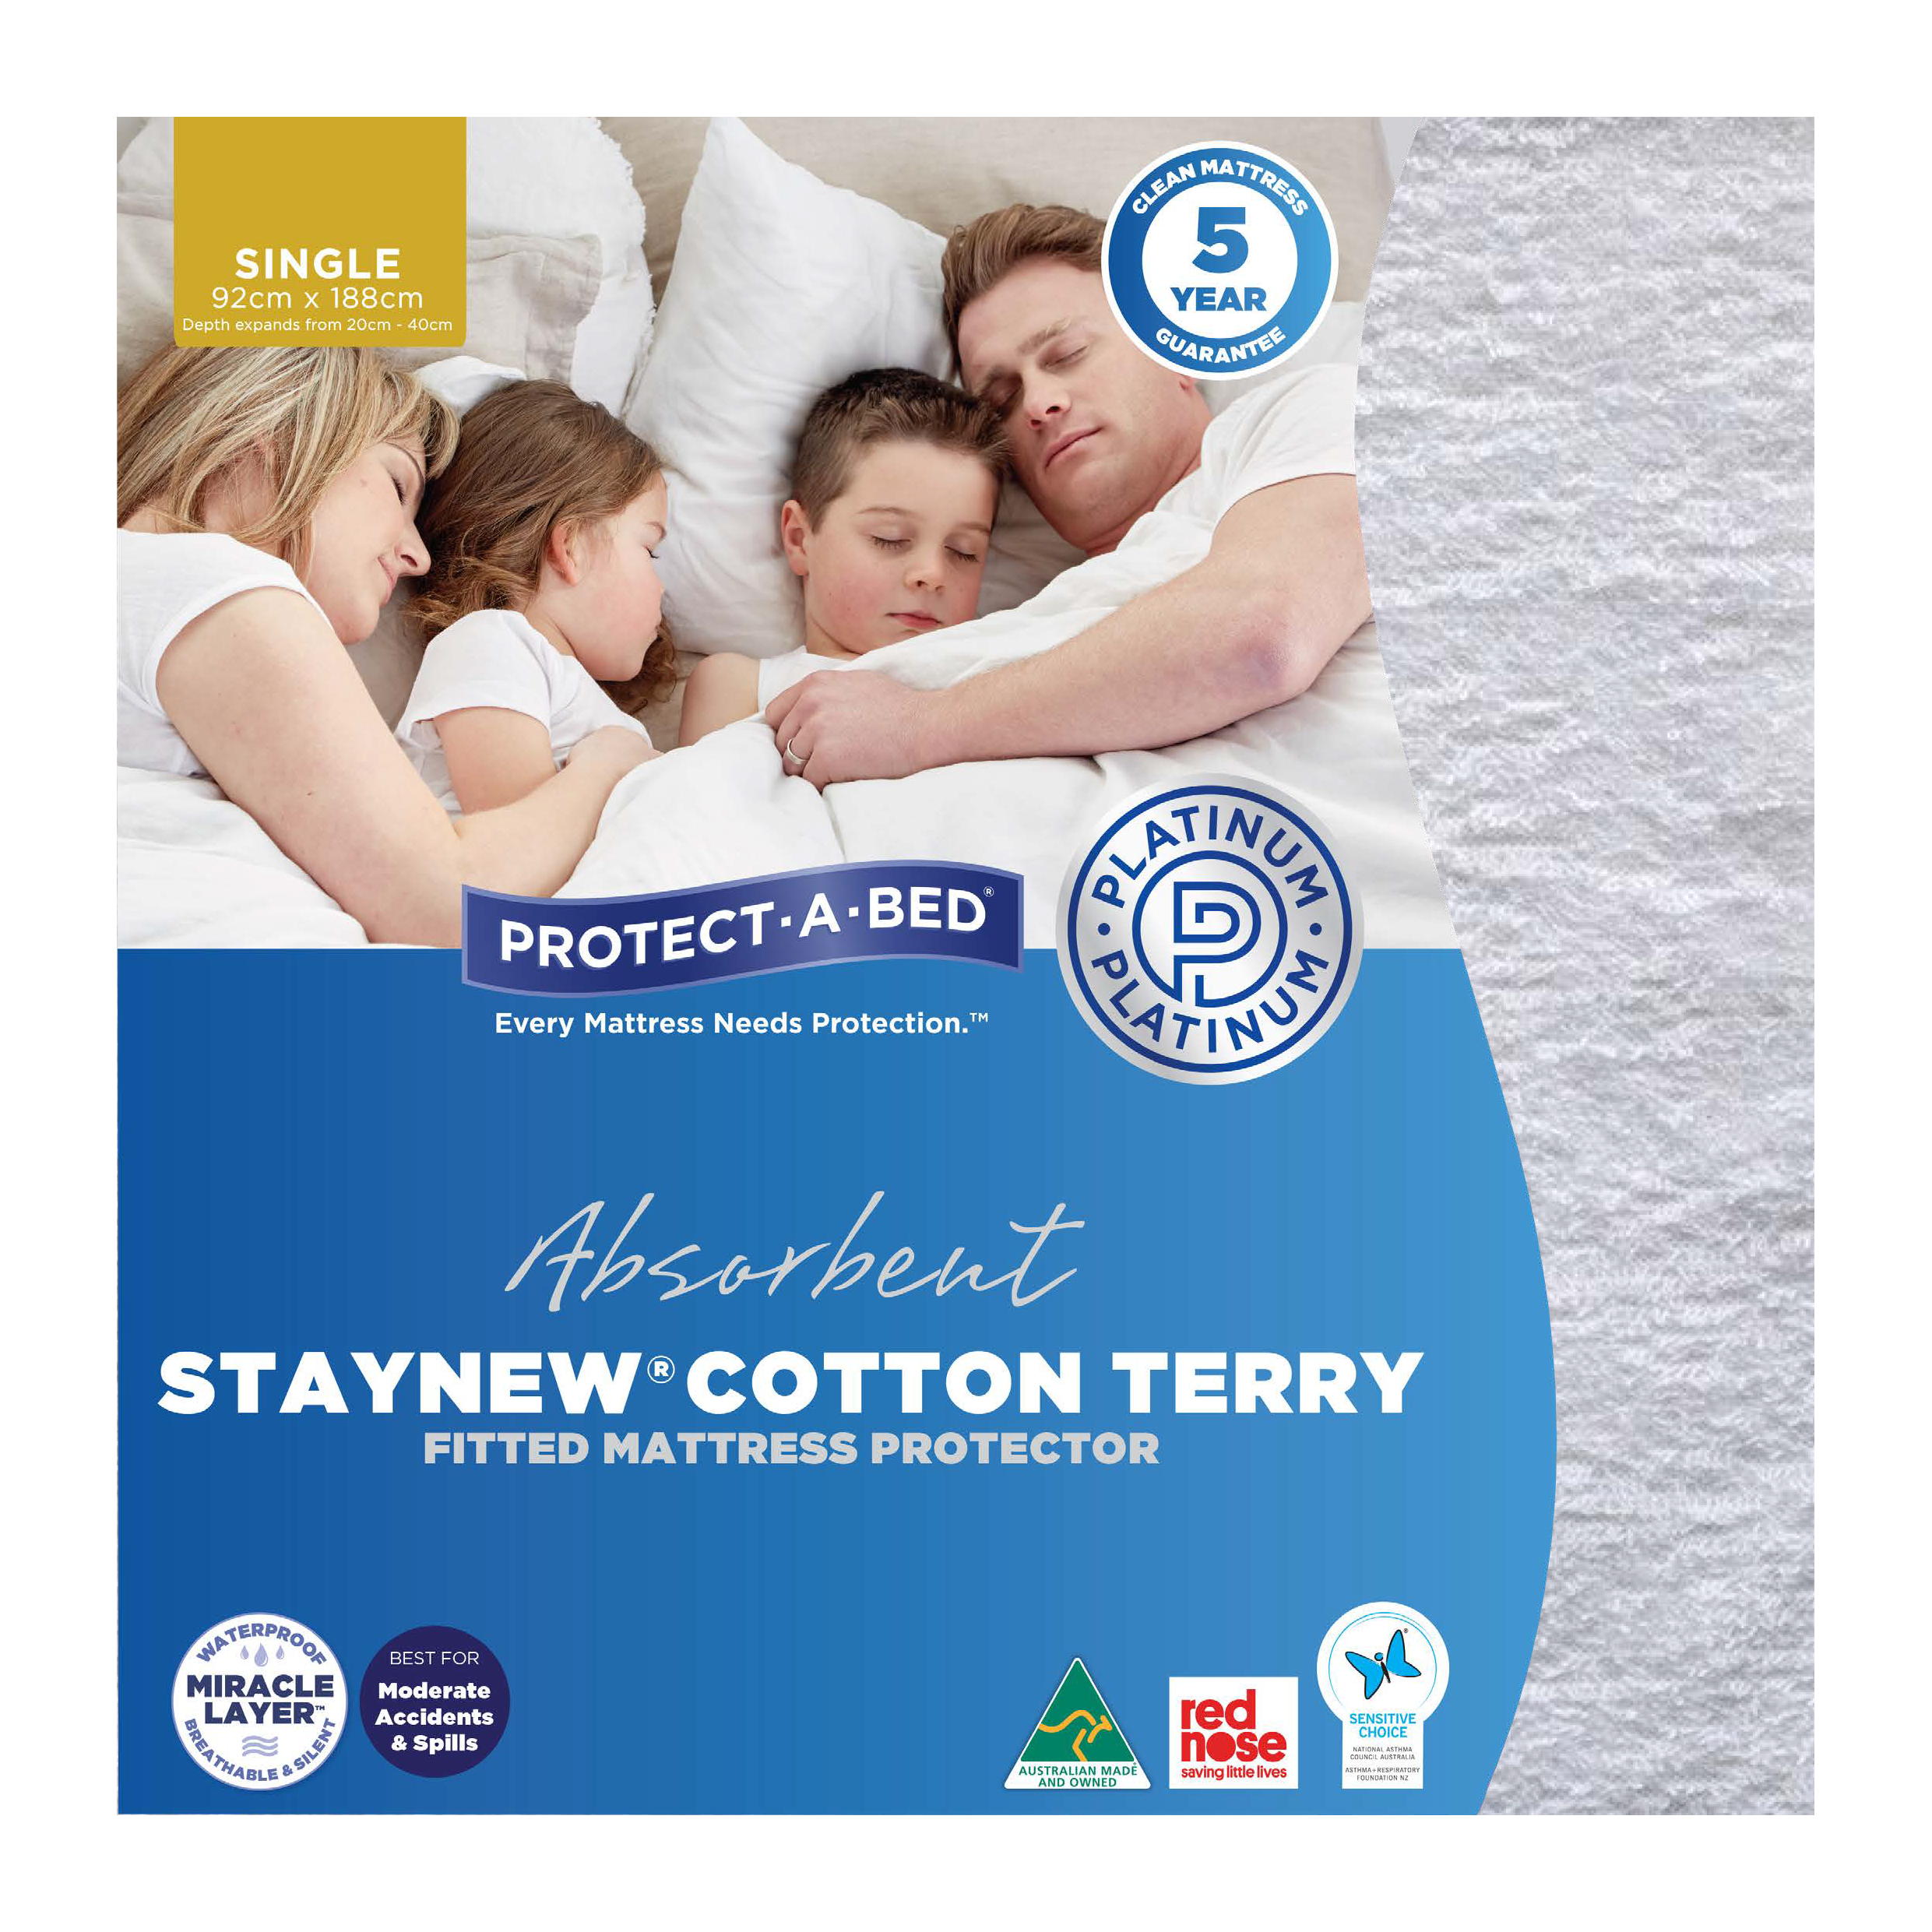 Protect-A-Bed Cotton Terry – Single Mattress Protector